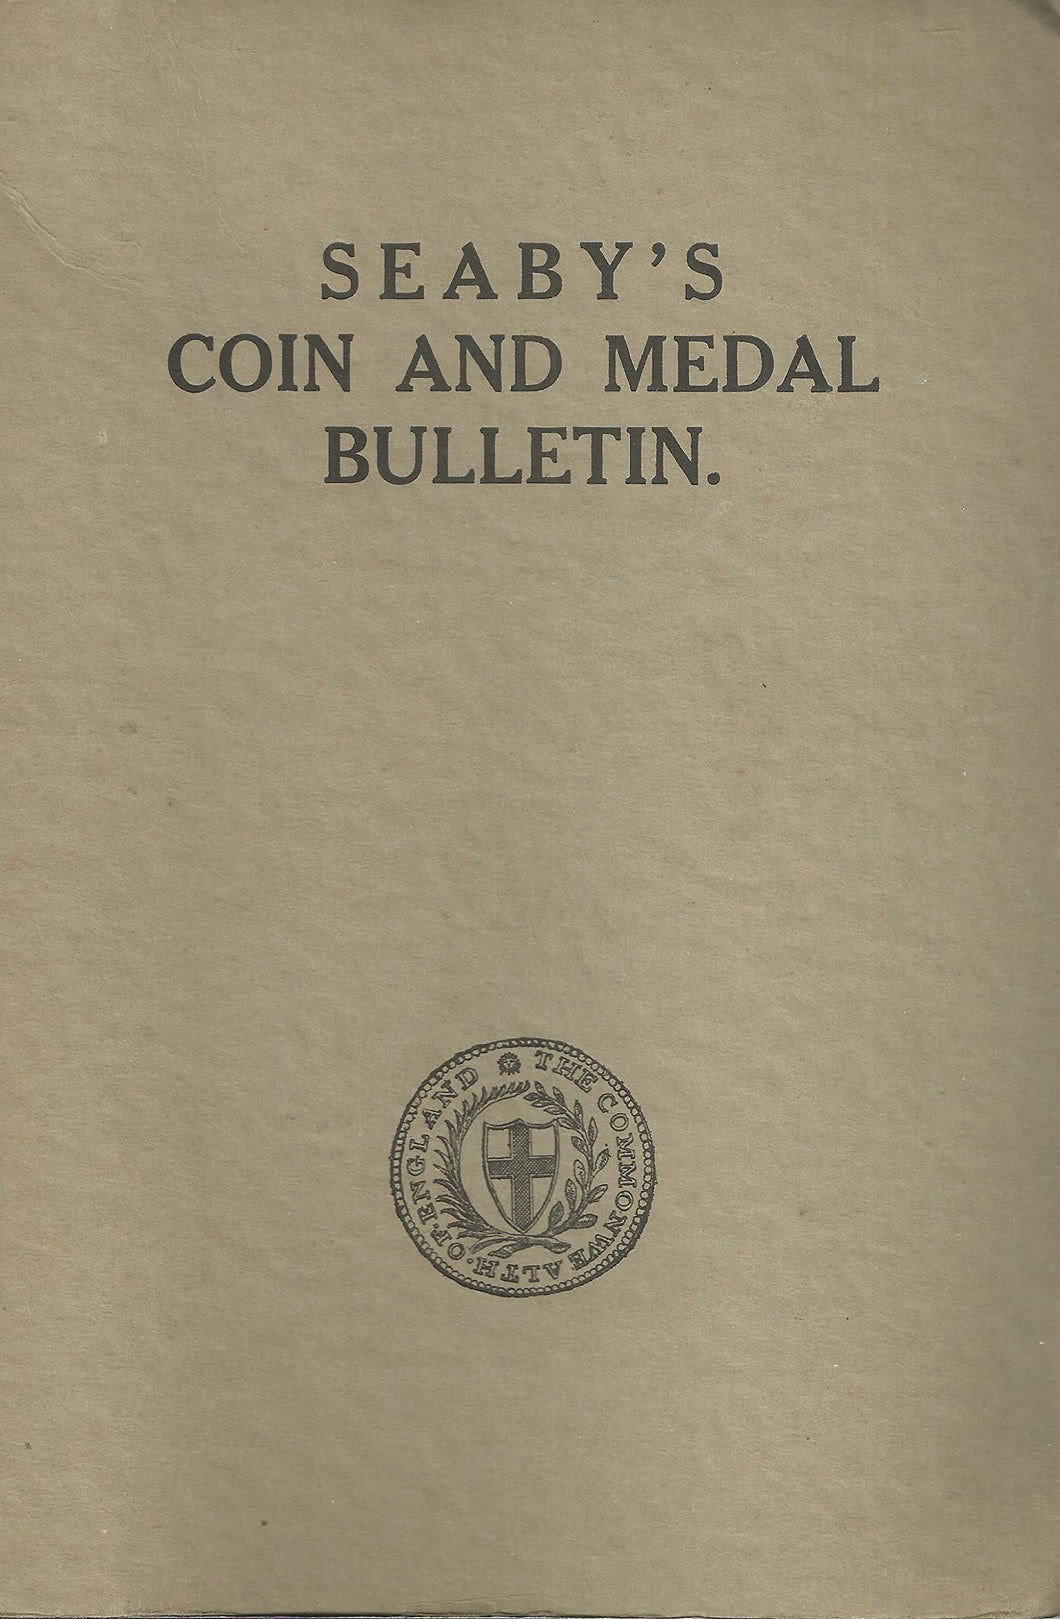 Seaby's Coin and Medal Buletin, 1967: Full Year (12 Bulletins) in Official Seaby's Binder